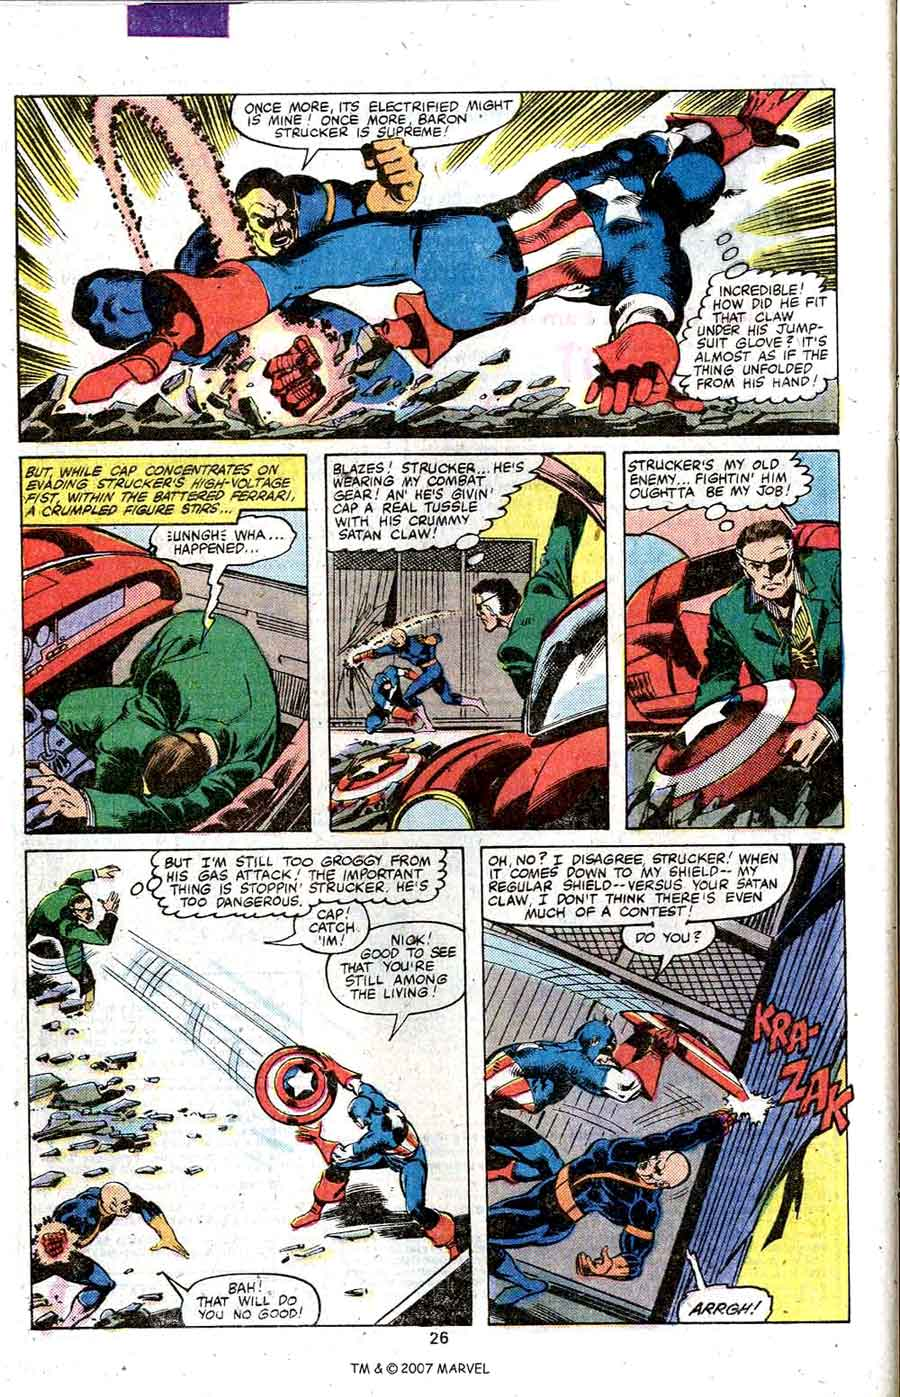 Captain America #247 marvel 1980s bronze age comic book page art by John Byrne